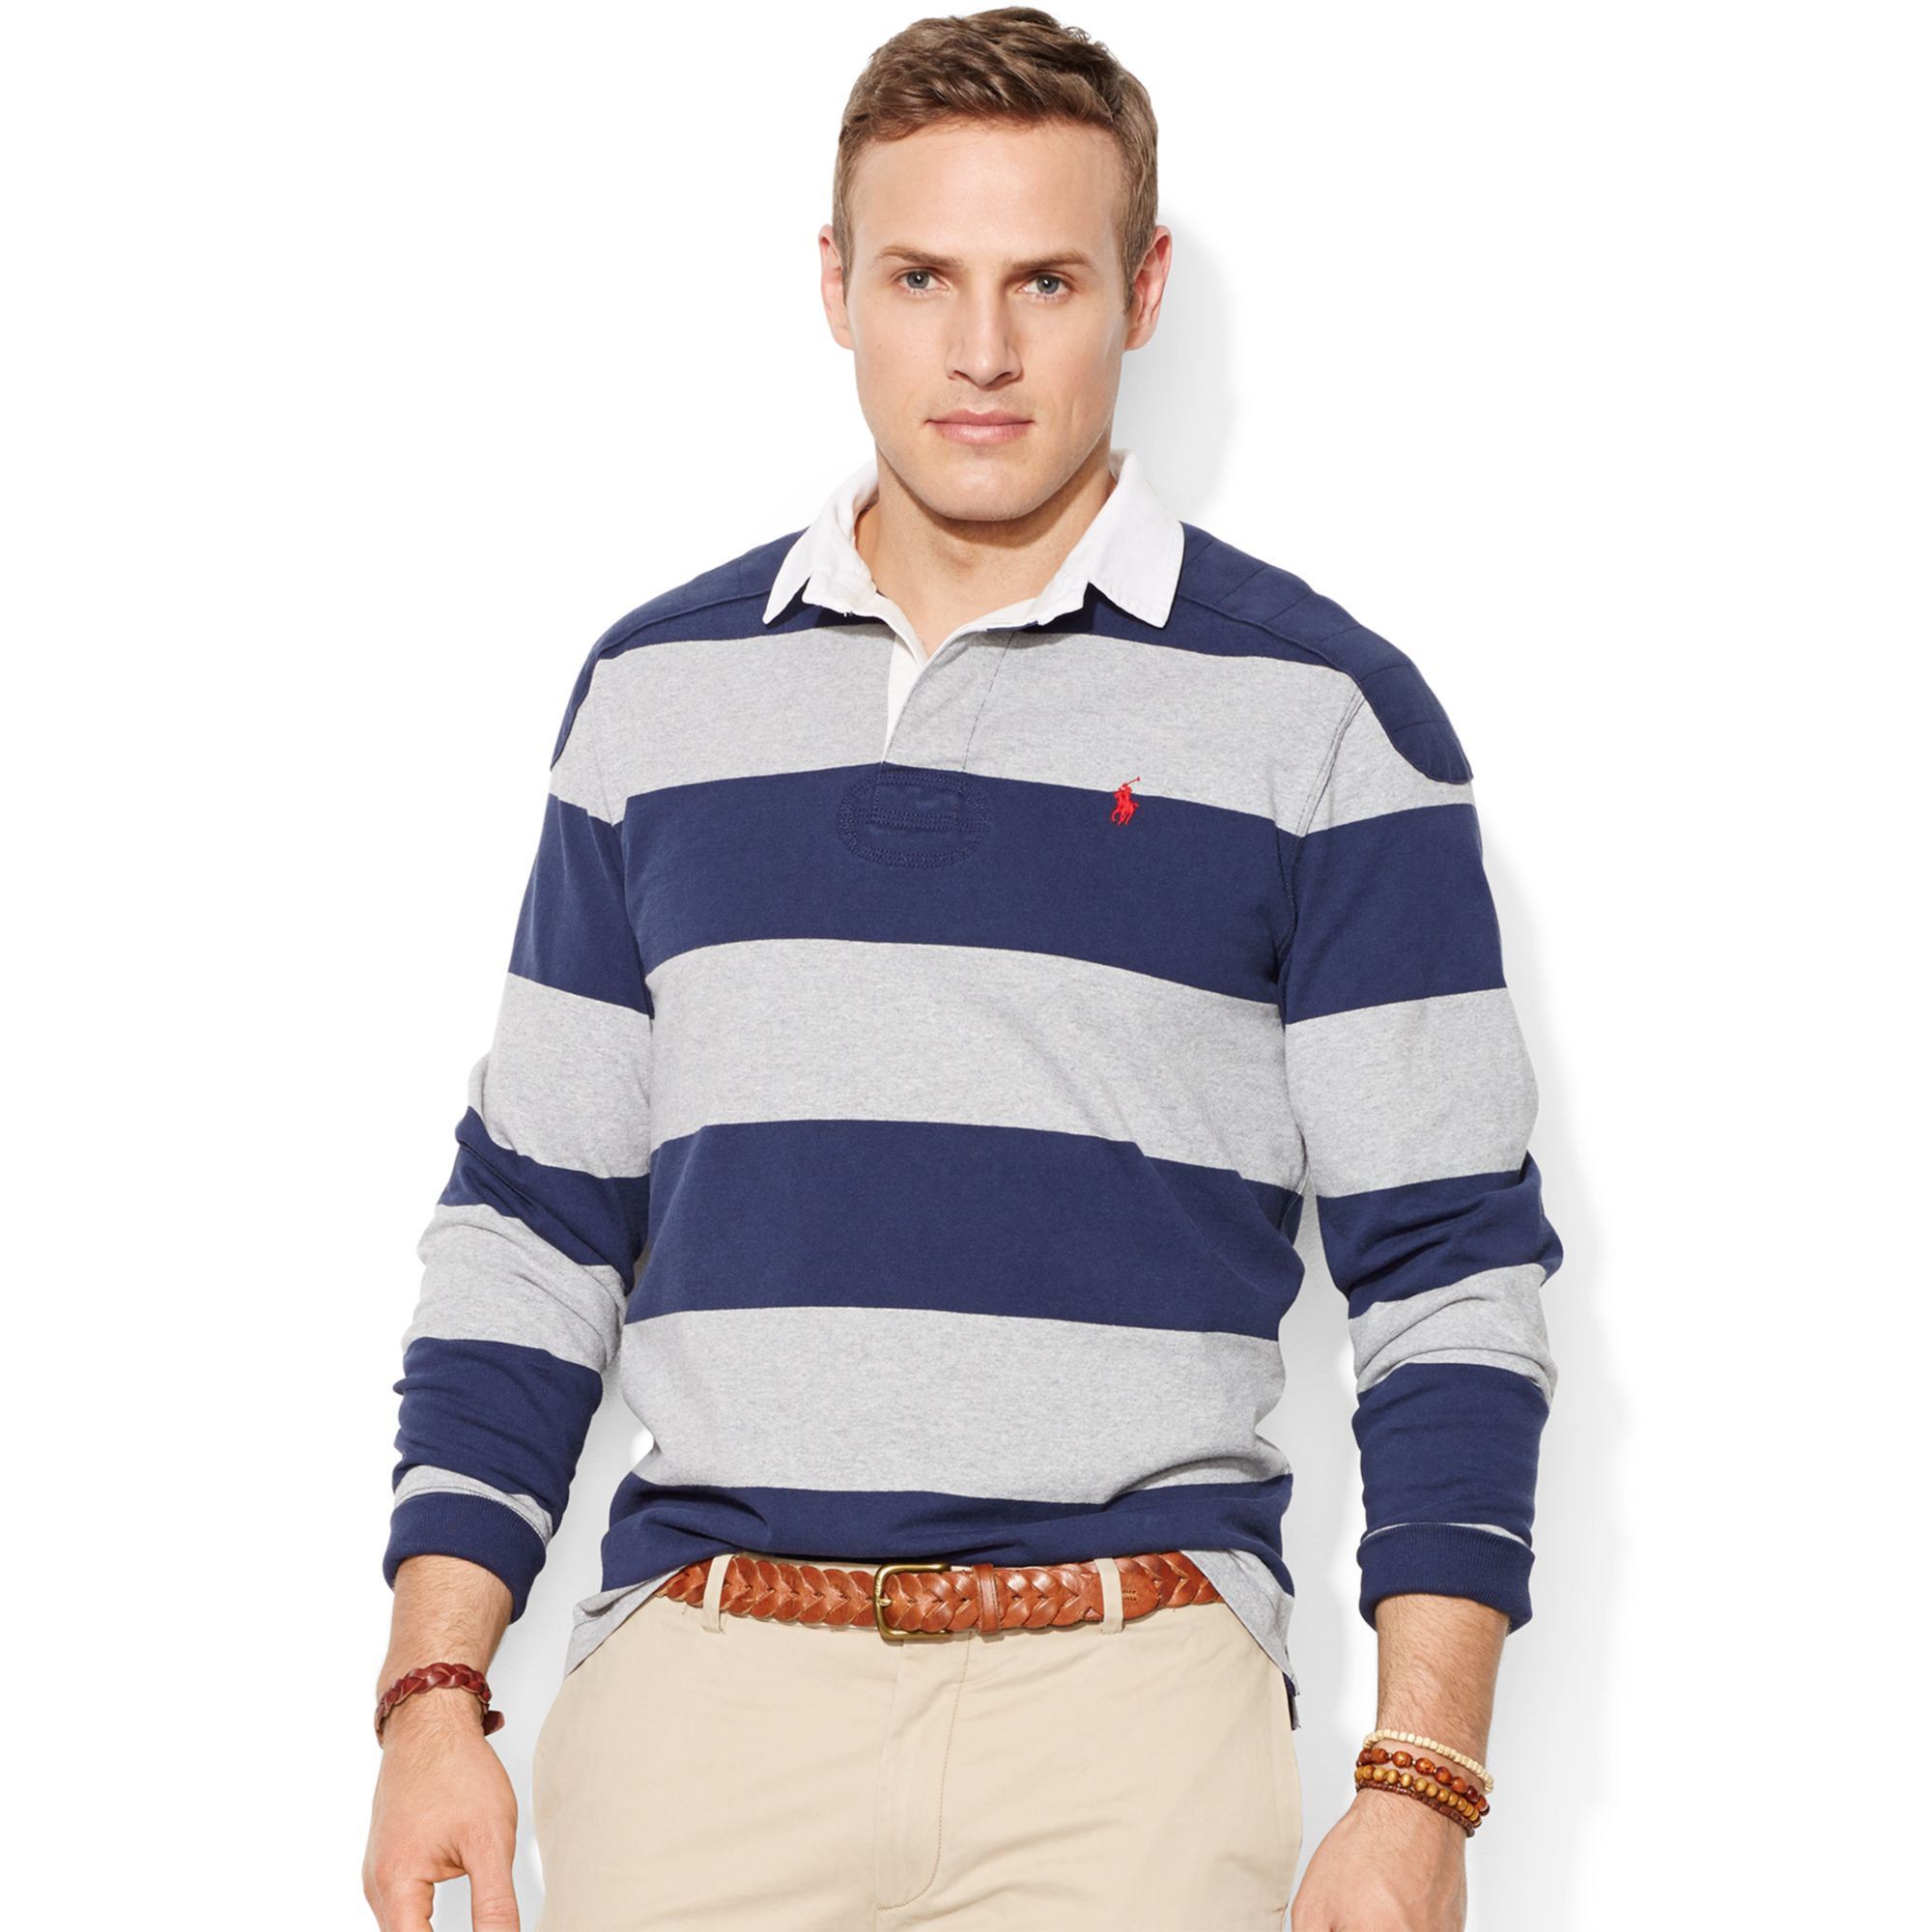 Polo ralph lauren big and tall long sleeve stripe rugby for Big and tall long sleeve shirts